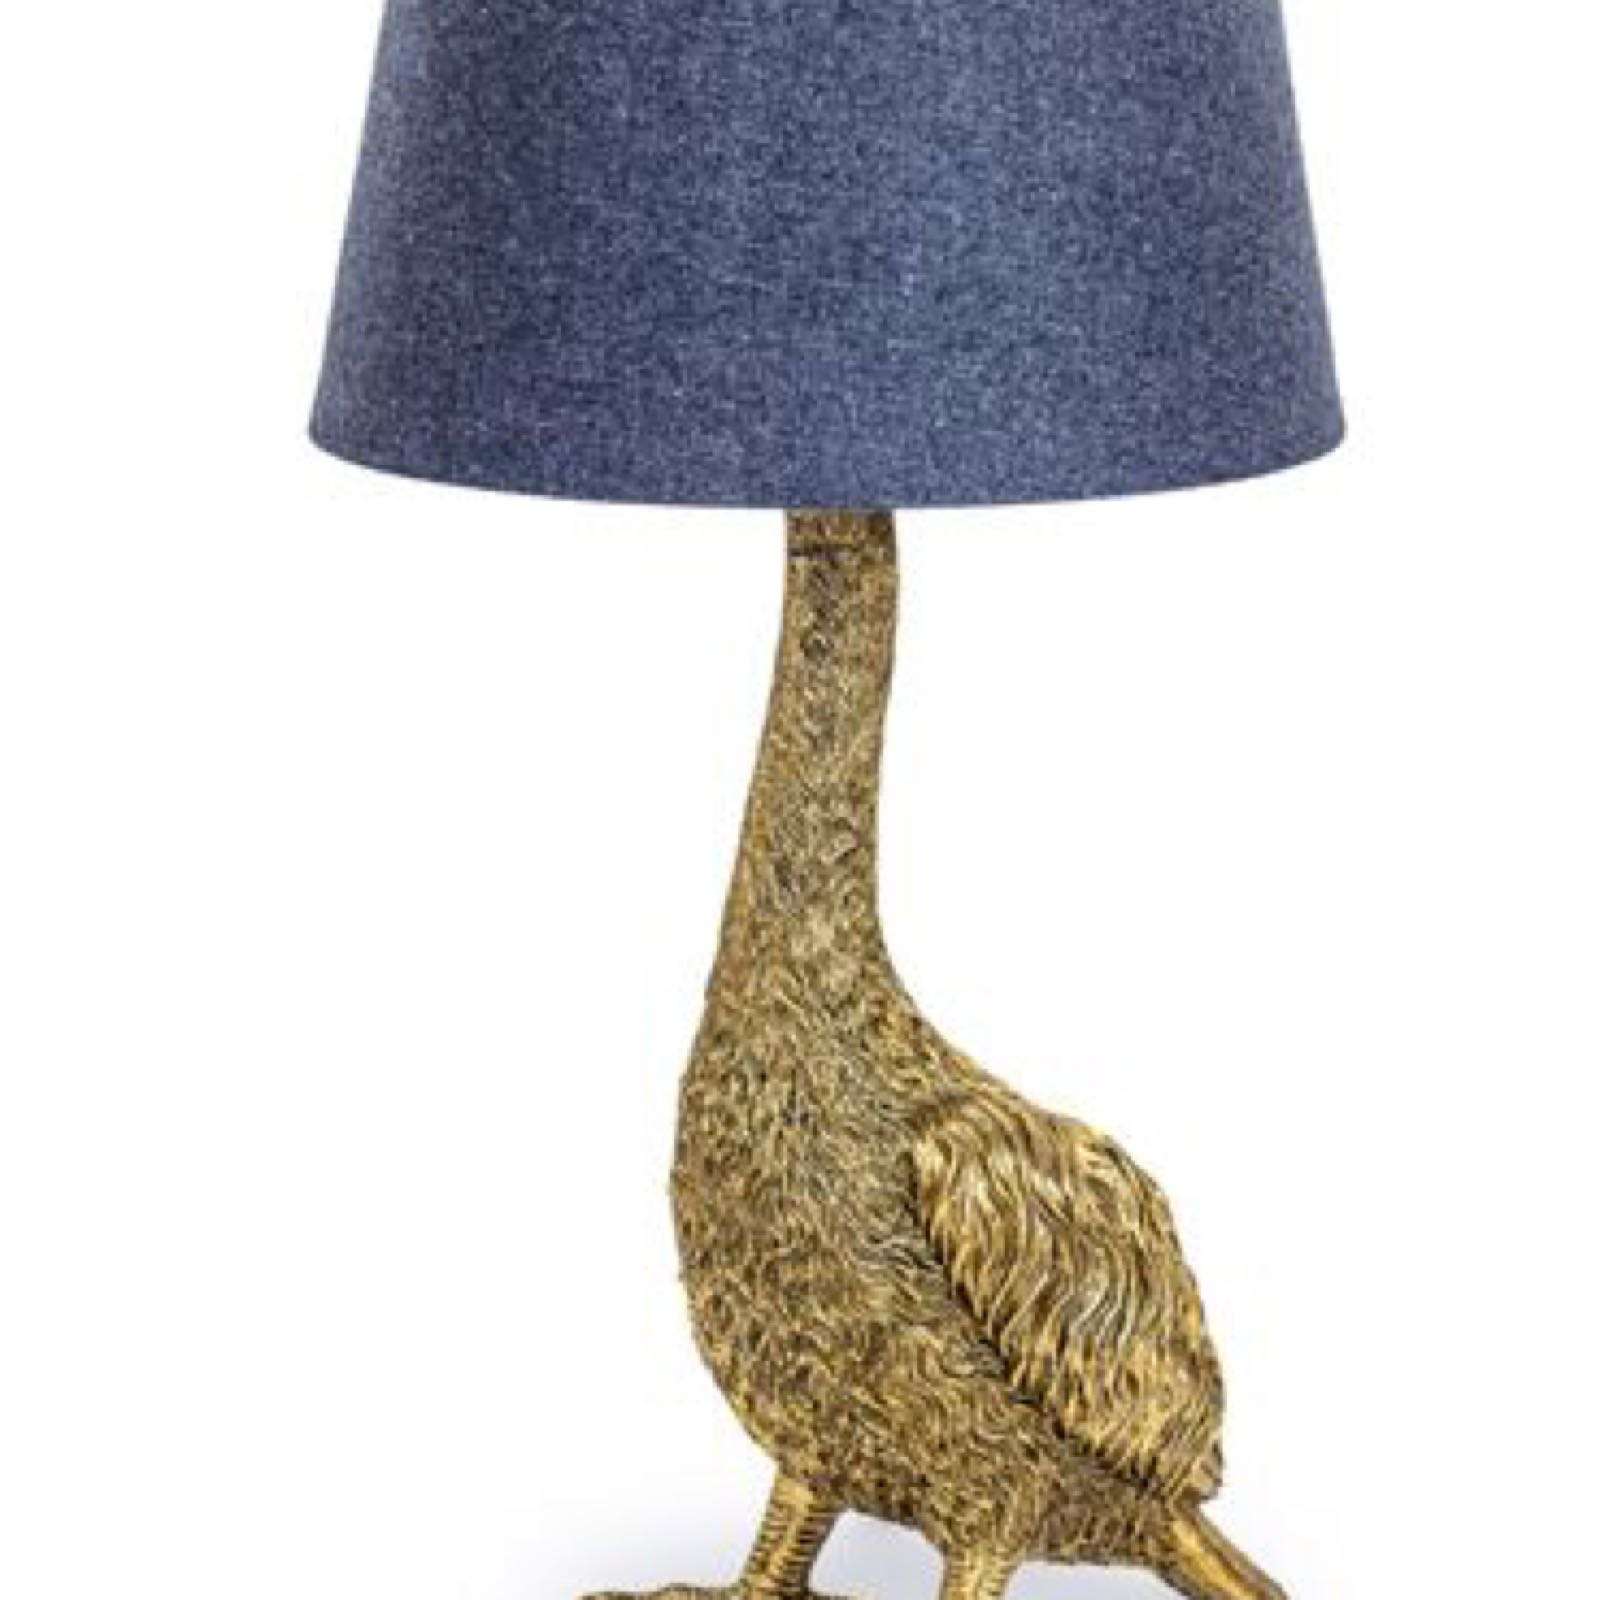 Antique gold Goose lamp with grey shade  30 x 59cm